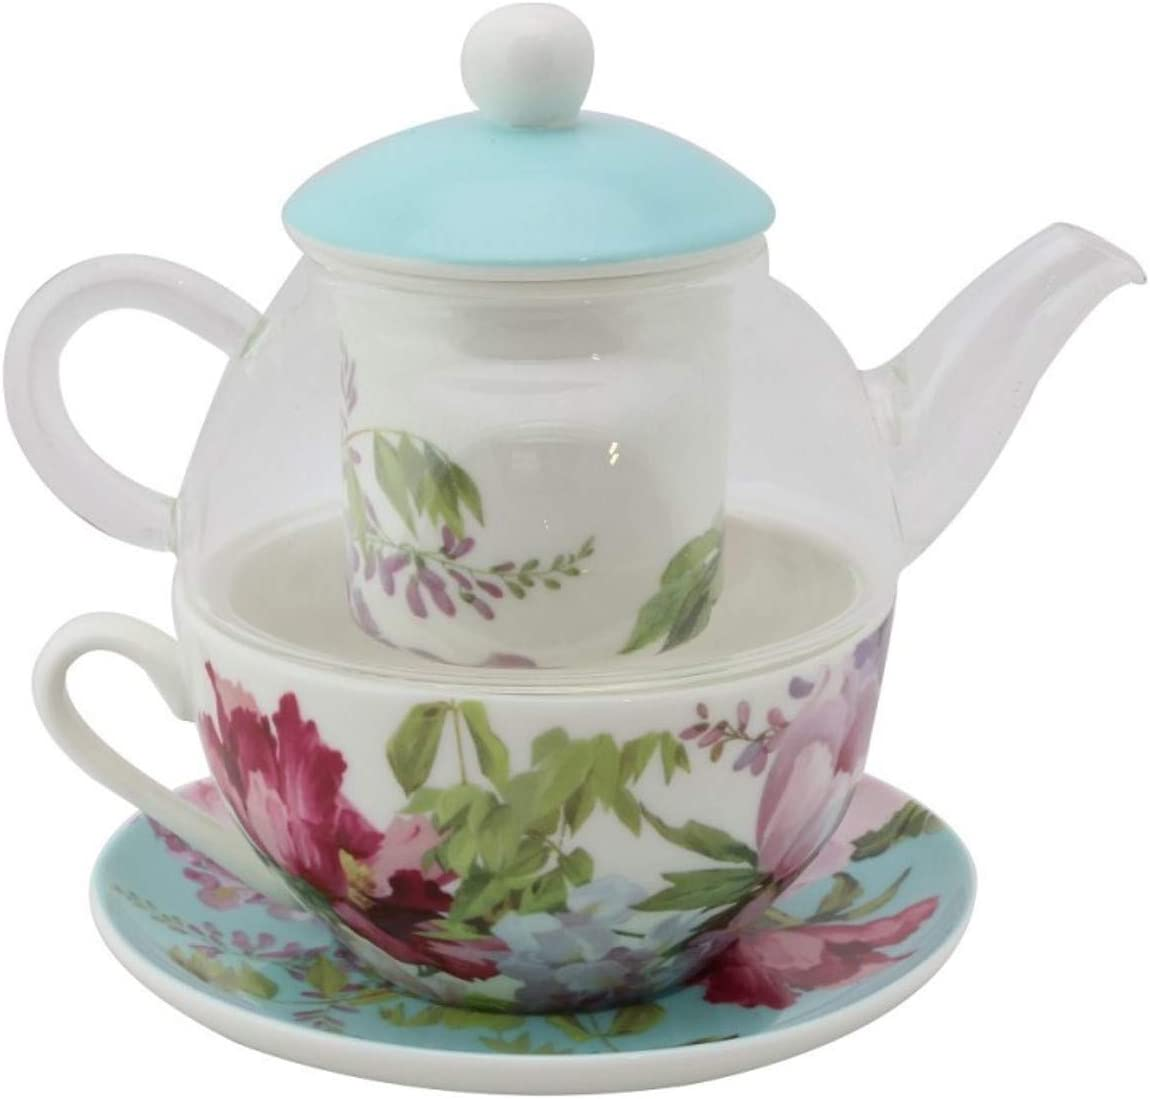 Coastline S17815E-7B Floral Mist Blue See Through Glass Tea for 1, 5 Piece Set Includes Floral Decorate Infuser